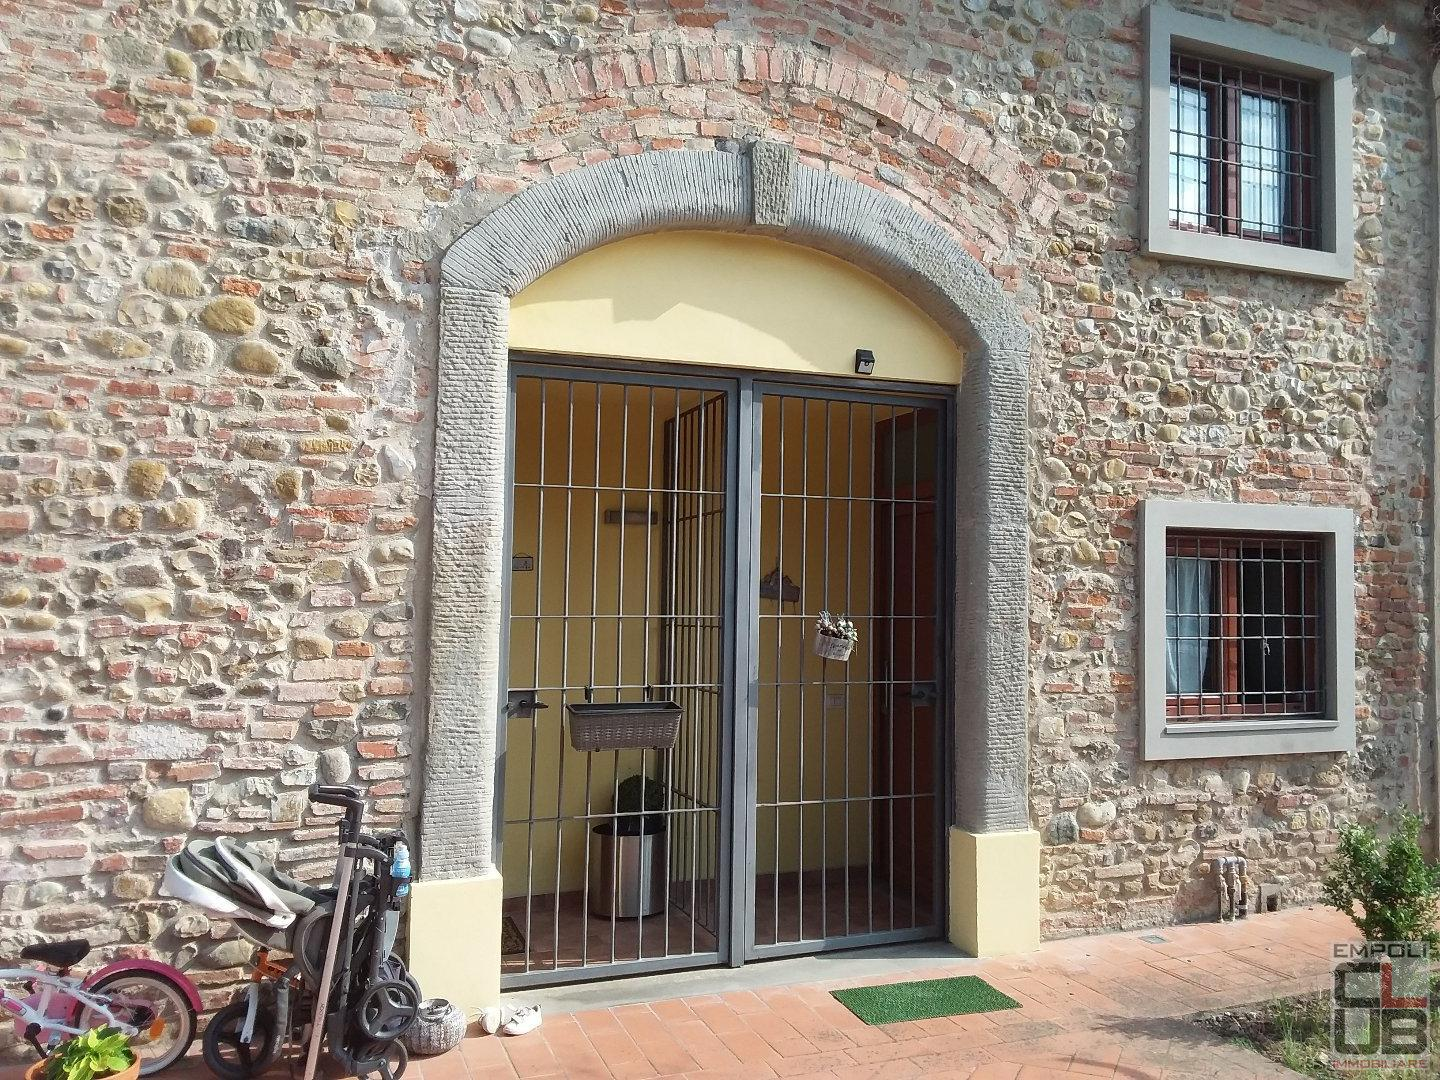 Townhouses for Sale in Empoli (FI)